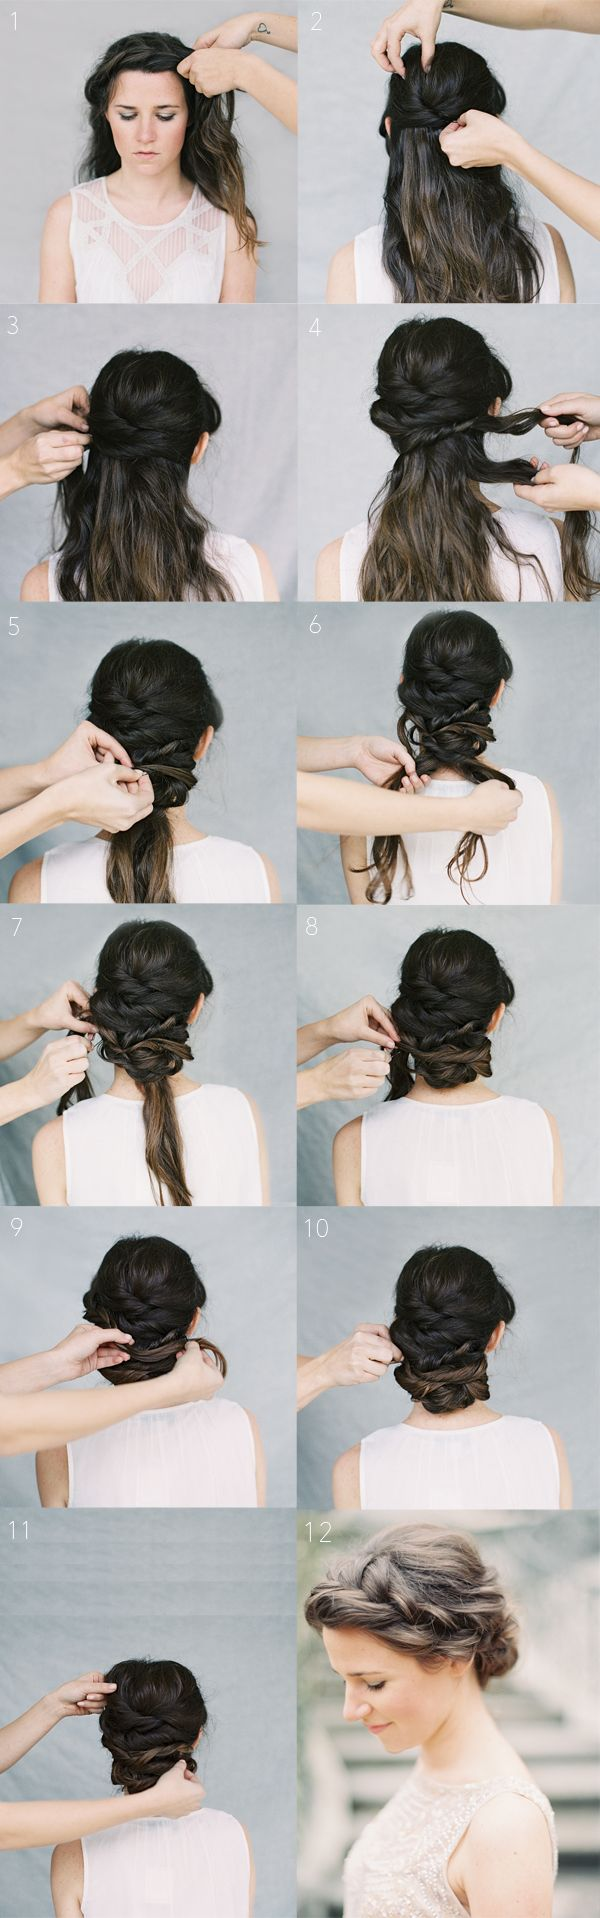 Step By Step Hair Updos